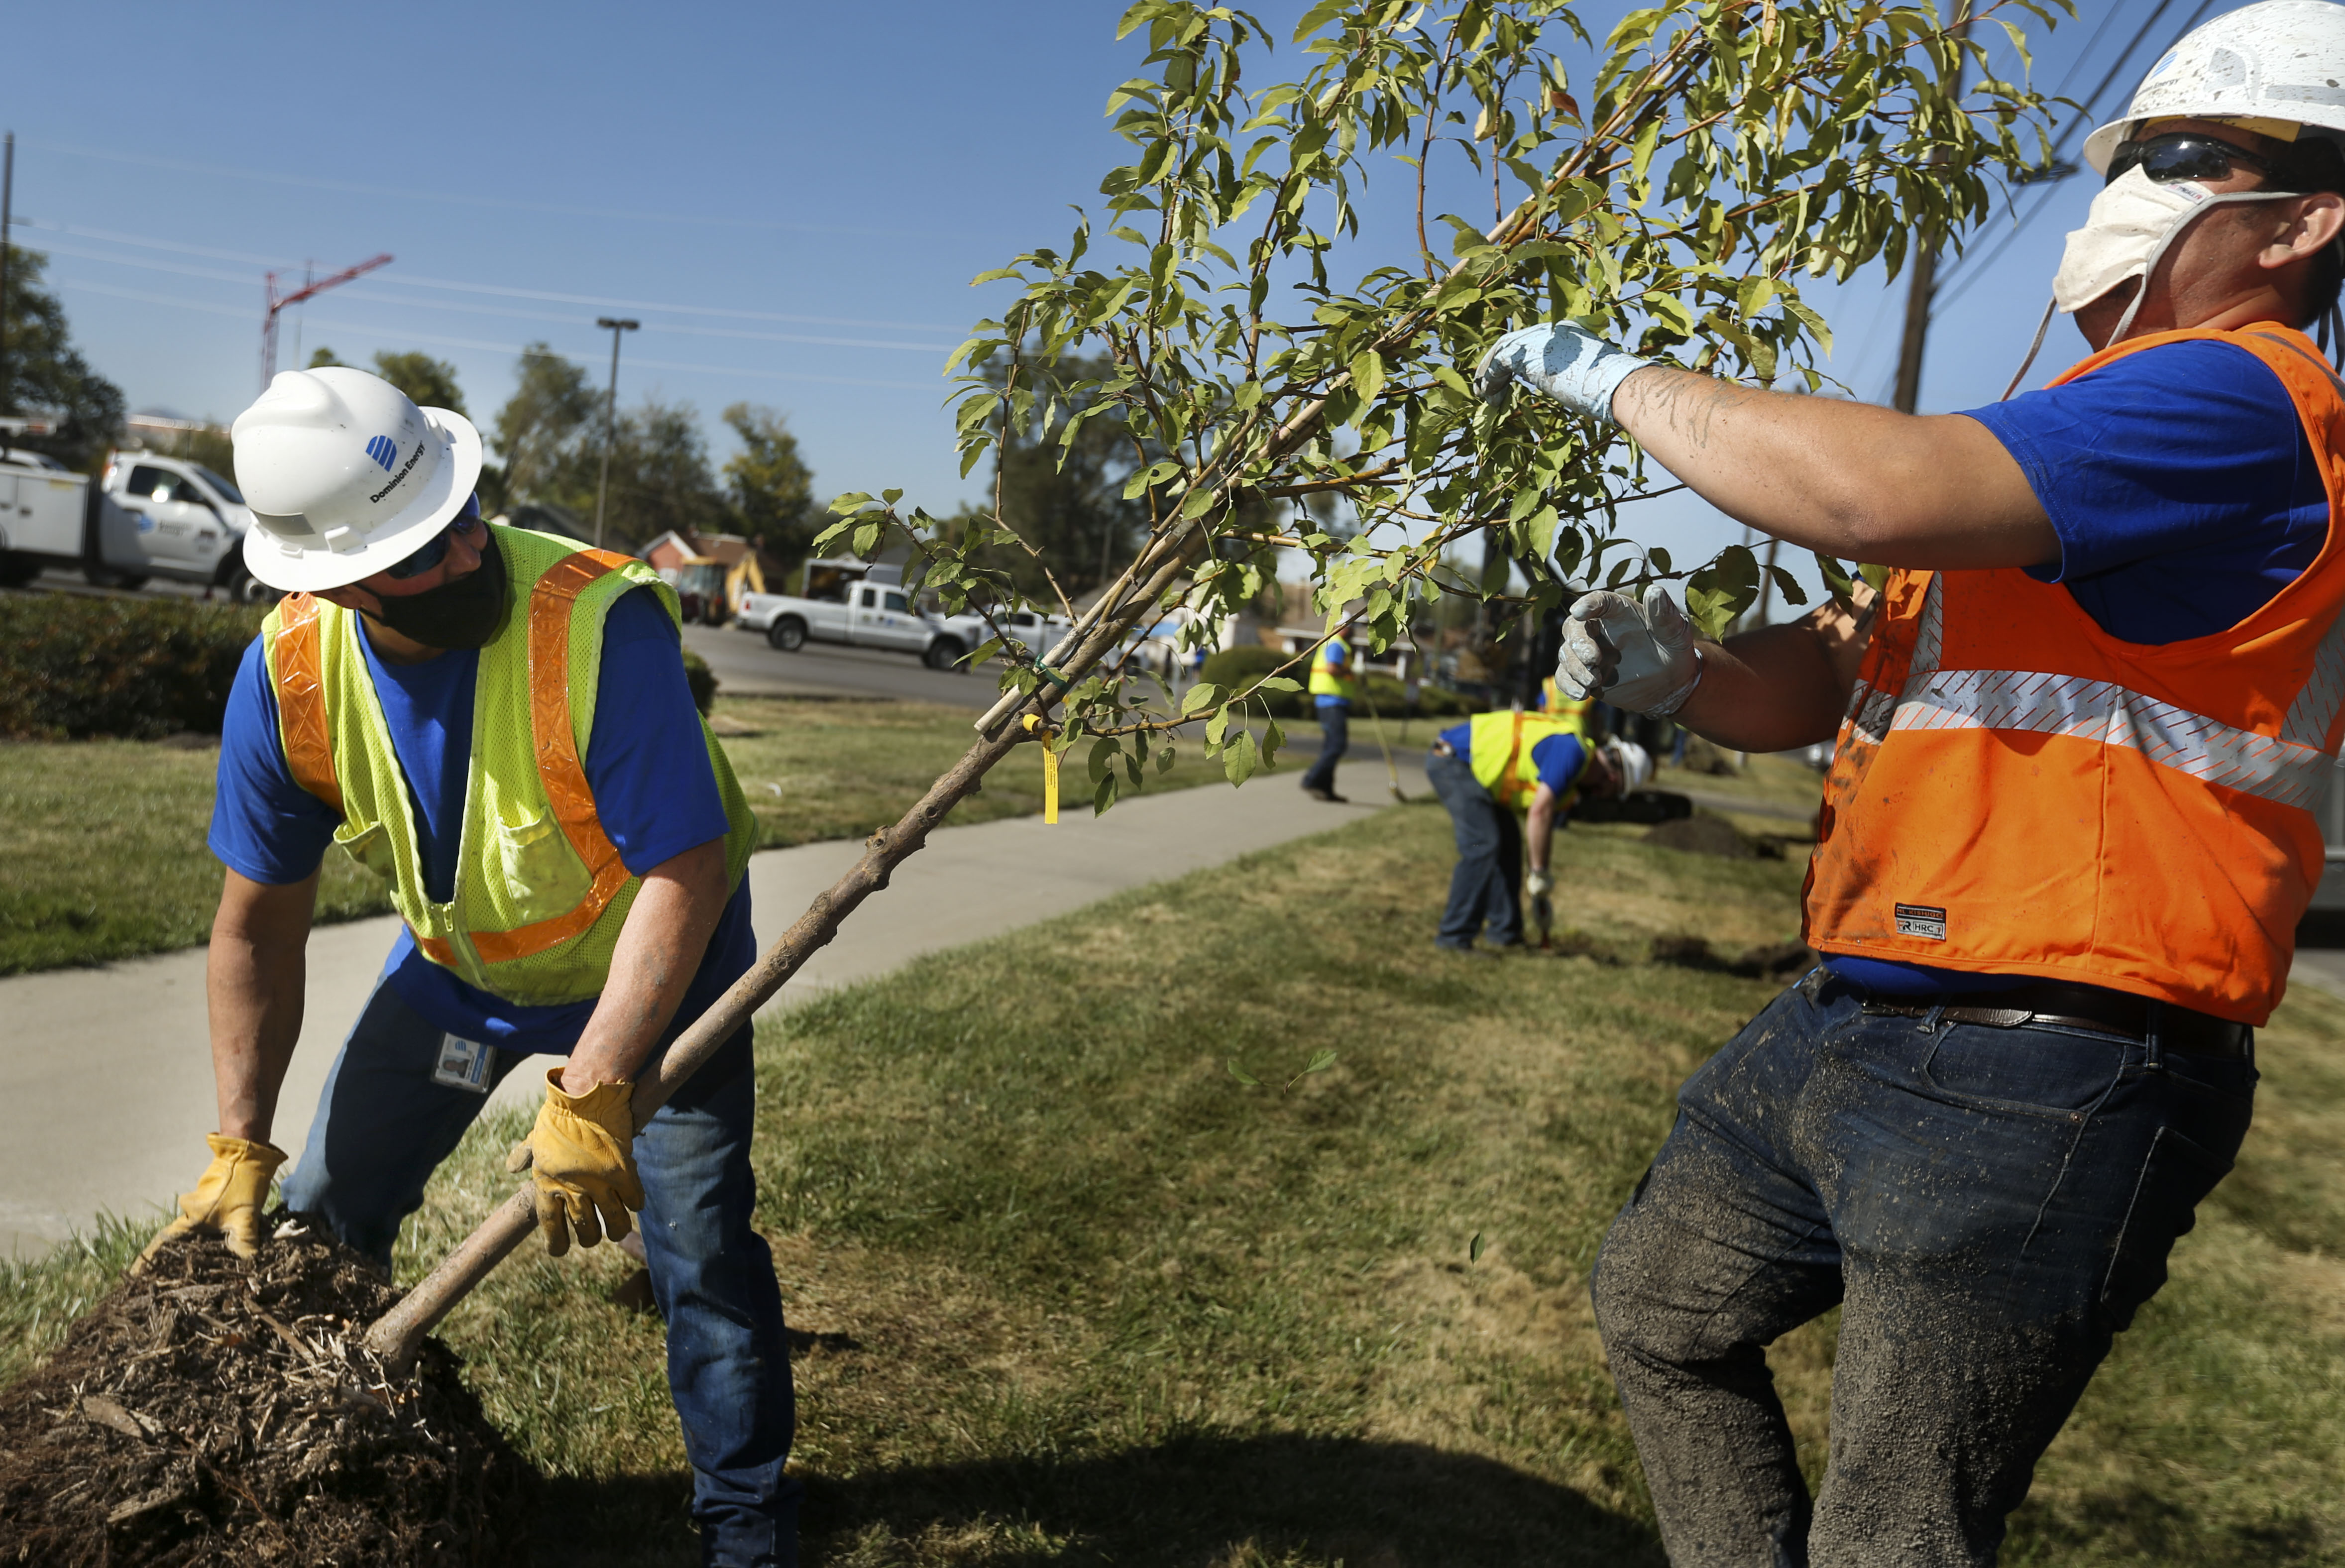 Tom Dickson and Joel Chavez, of Dominion Energy, plant a tree on 200 North in the Fairpark neighborhood of Salt Lake City on Thursday, Oct. 1, 2020.